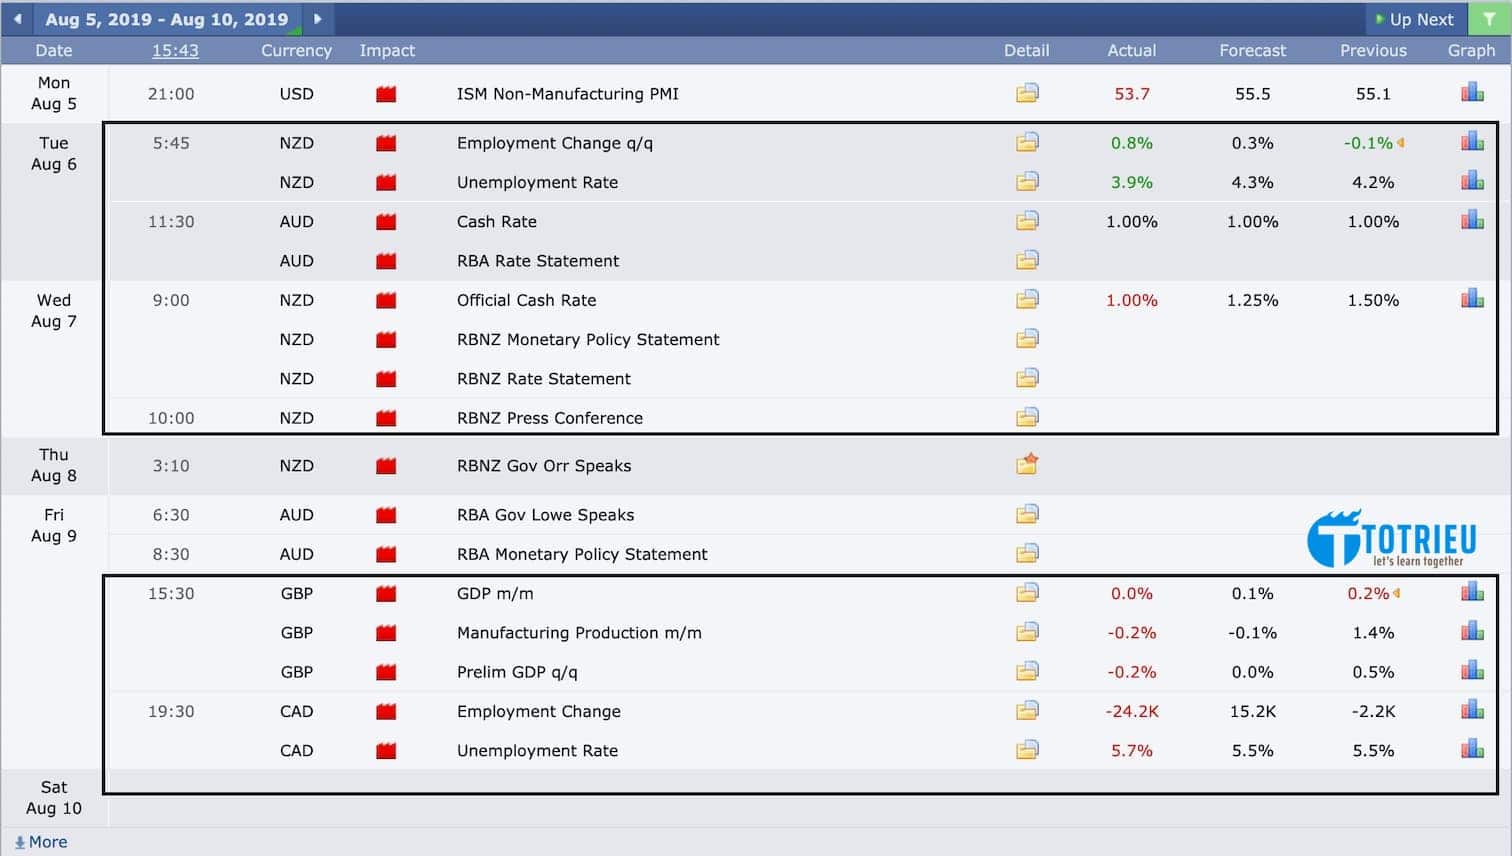 Forex Economic Data Week 32/2019